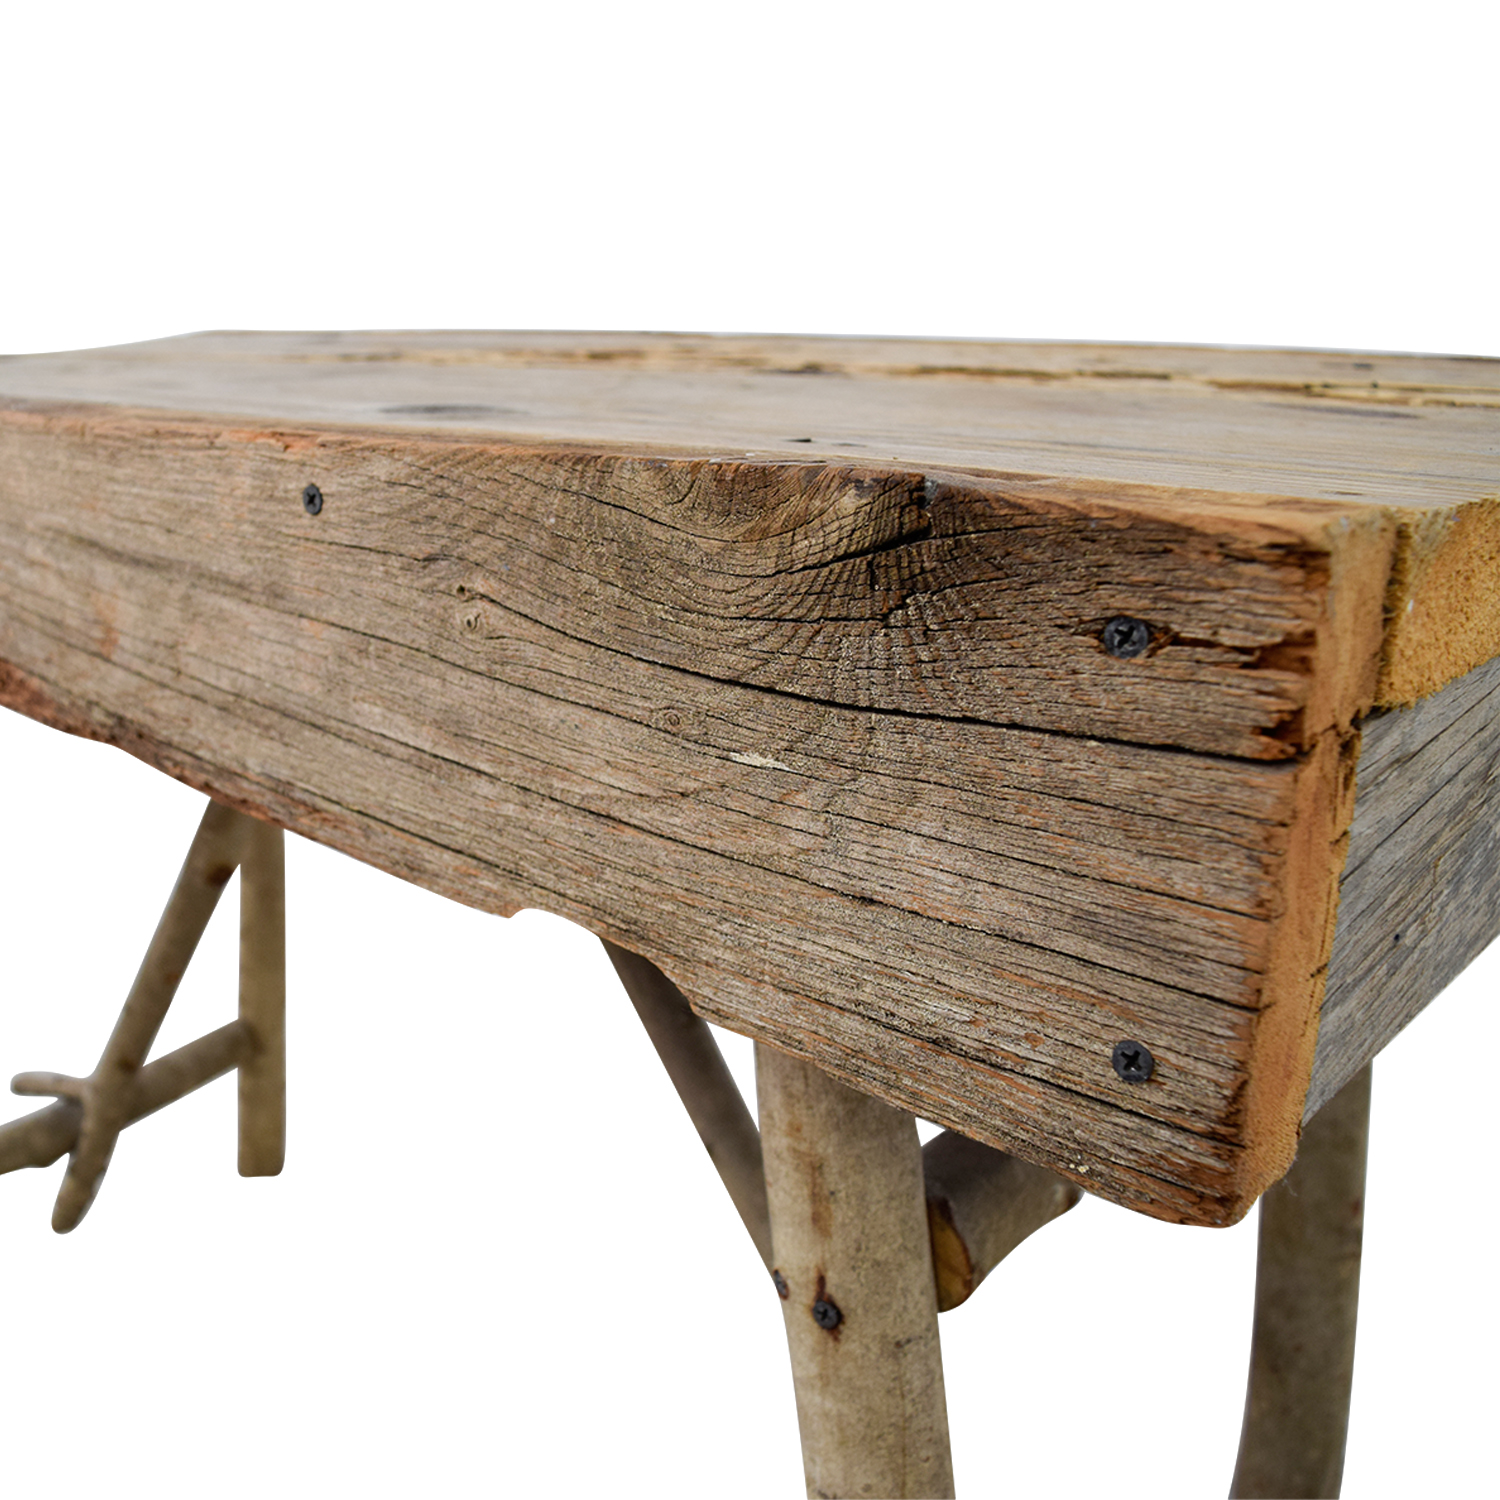 ... Buy Pier 1 Imports Rustic Wood TV Table Pier 1 Imports Tables